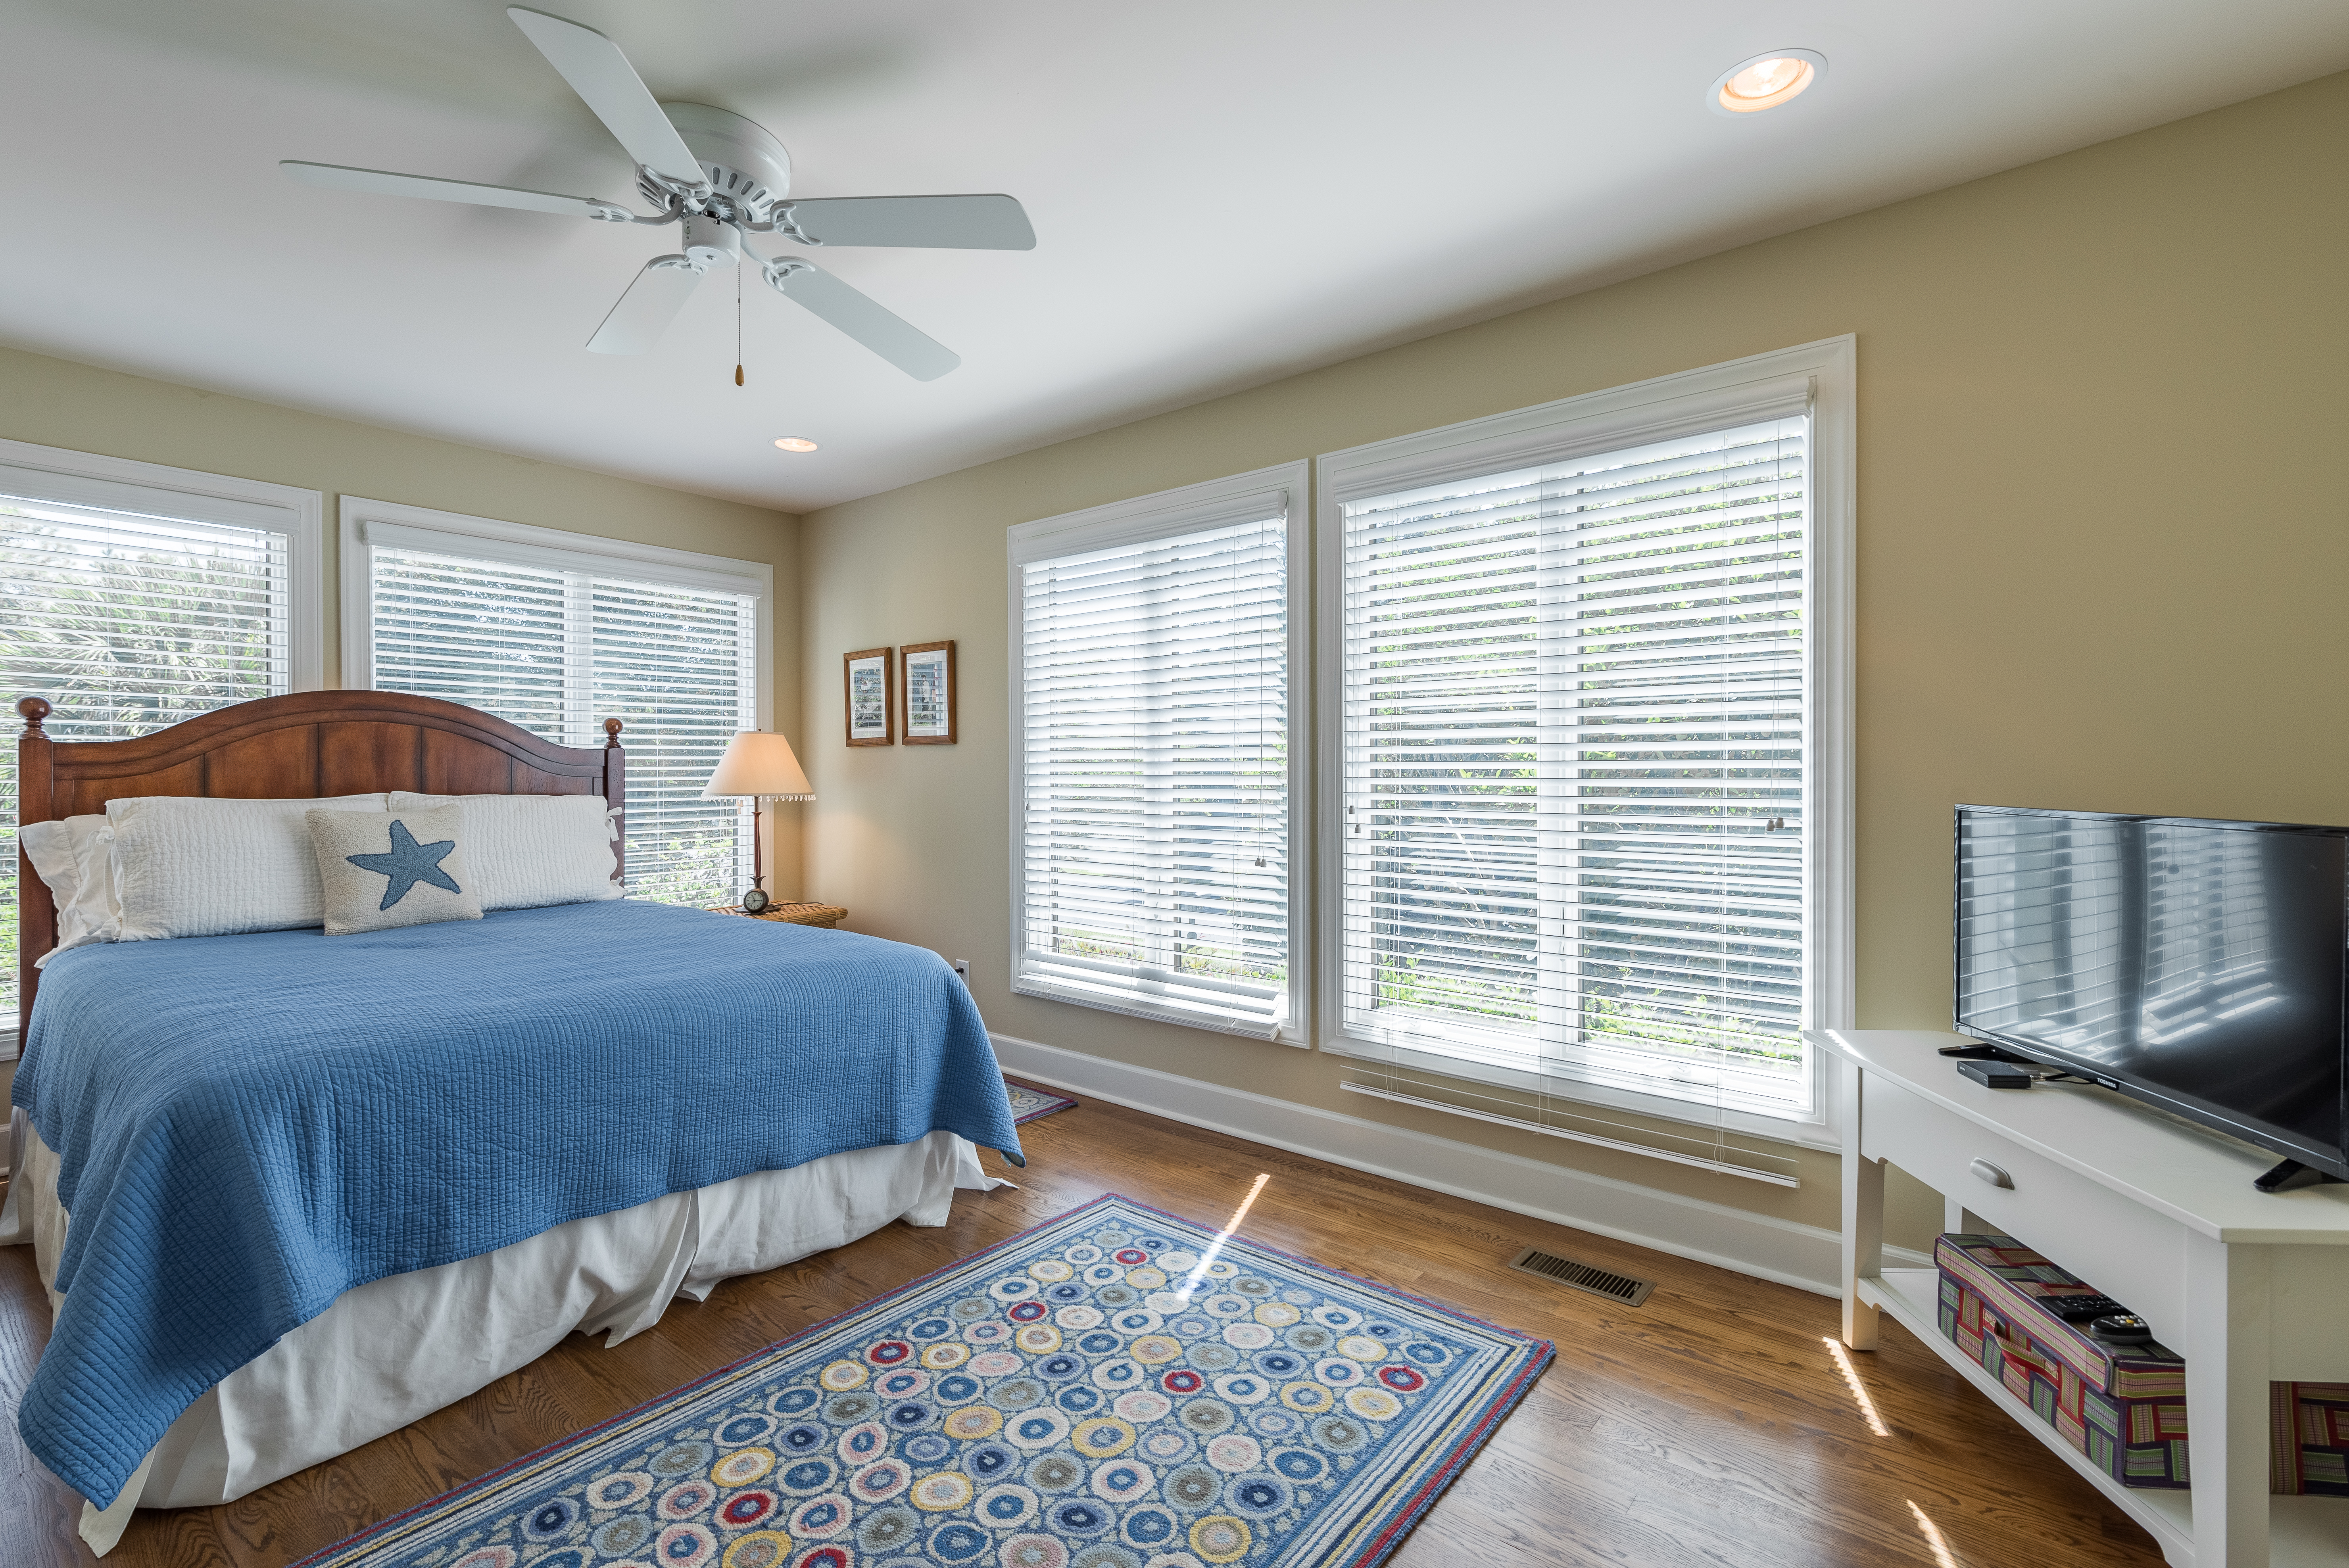 1st bedroom with queen bed and HDTV.  This private retreat is spacious and has a soothing blue and white decor.